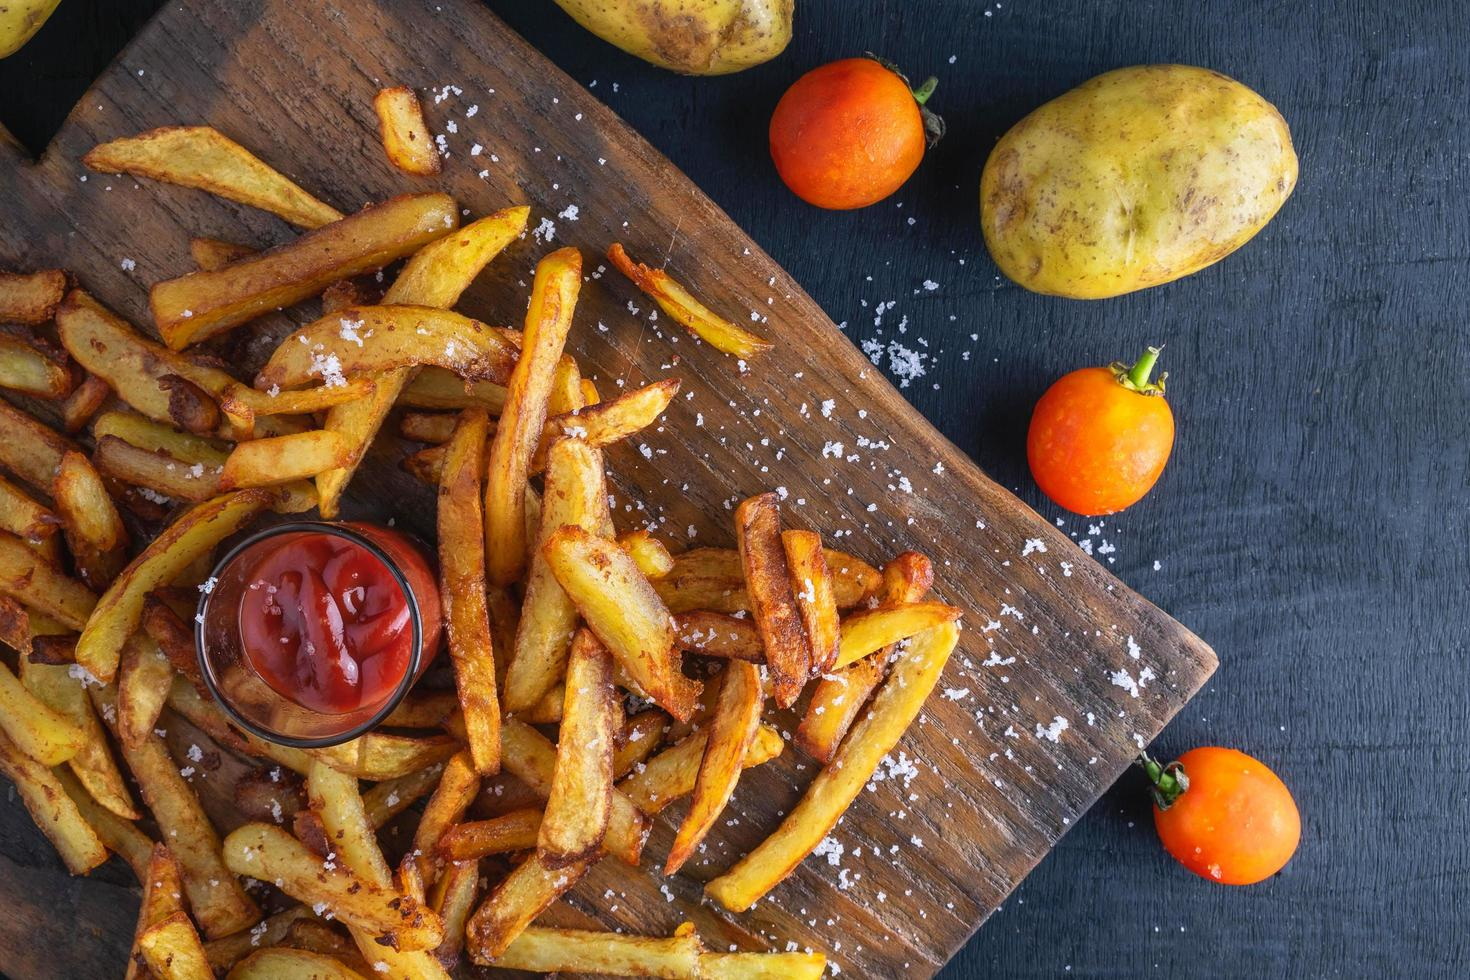 Home baked French fries photo